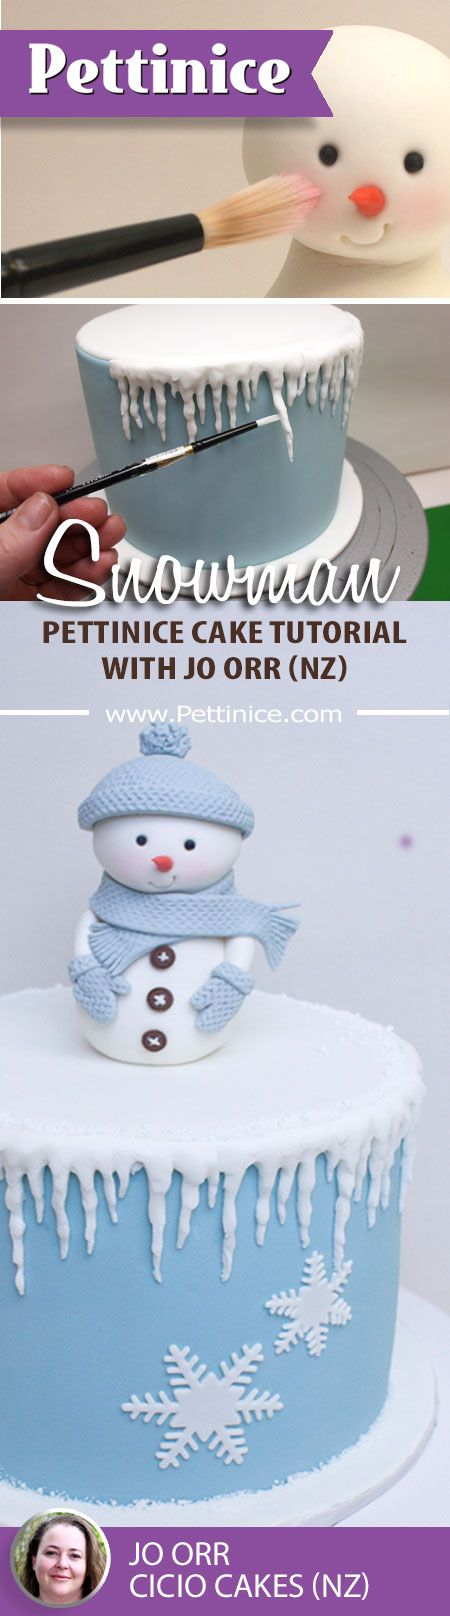 How to make this cute little snowman with icicle cake tutorial from www.pettinice.com/tutorials